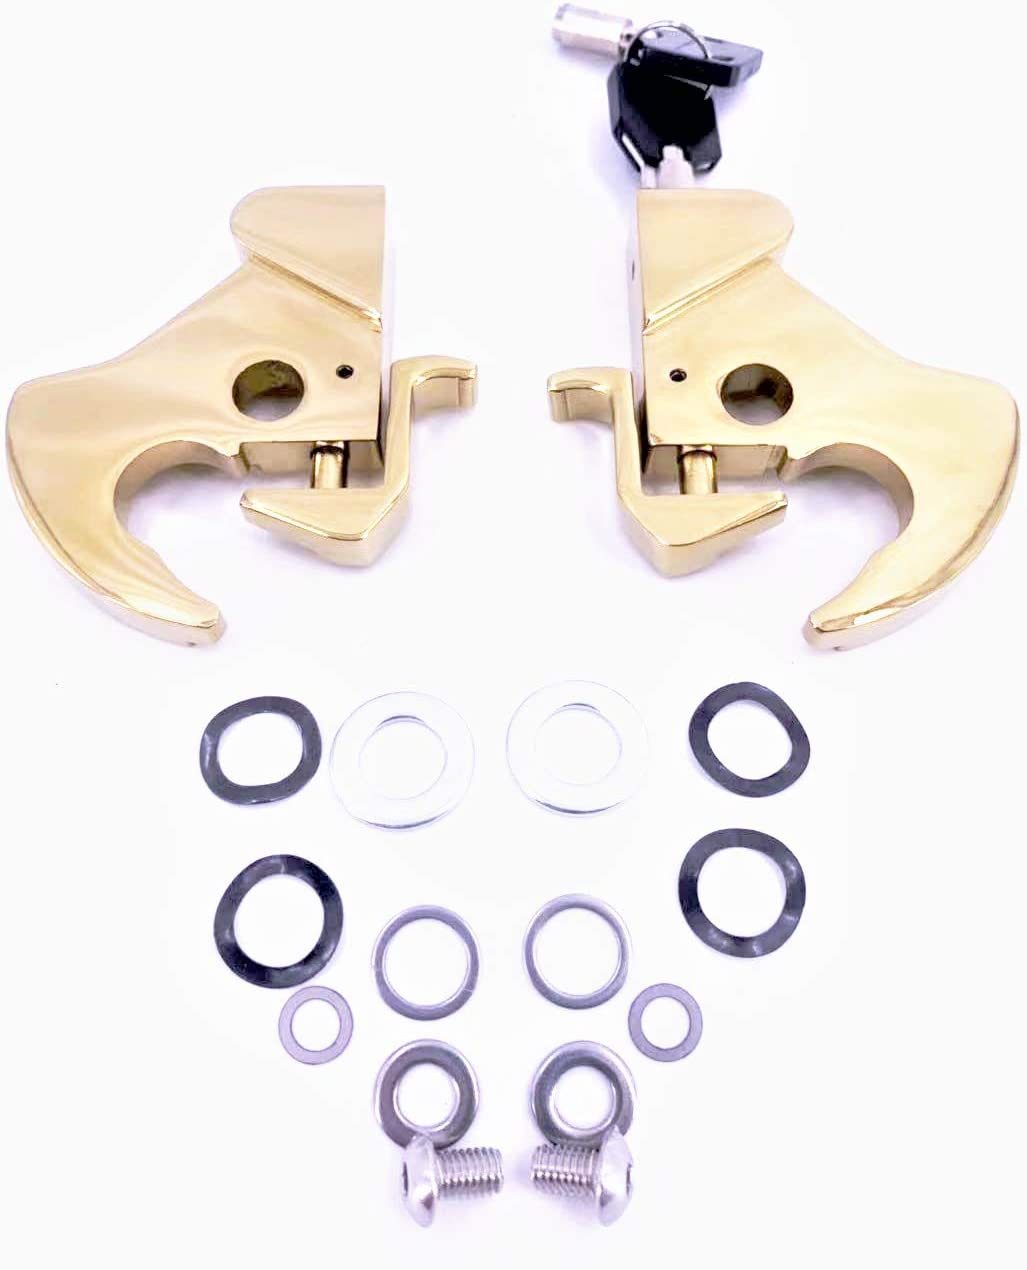 Gold, 2 latches /& both with keys Locking Detachable Latch Kit Rotary Docking Latch Cam Lock Kit with Screw Caps for Harley Davidson HD Dyna Softail Sportster Touring Sissy Bar Luggage Rack